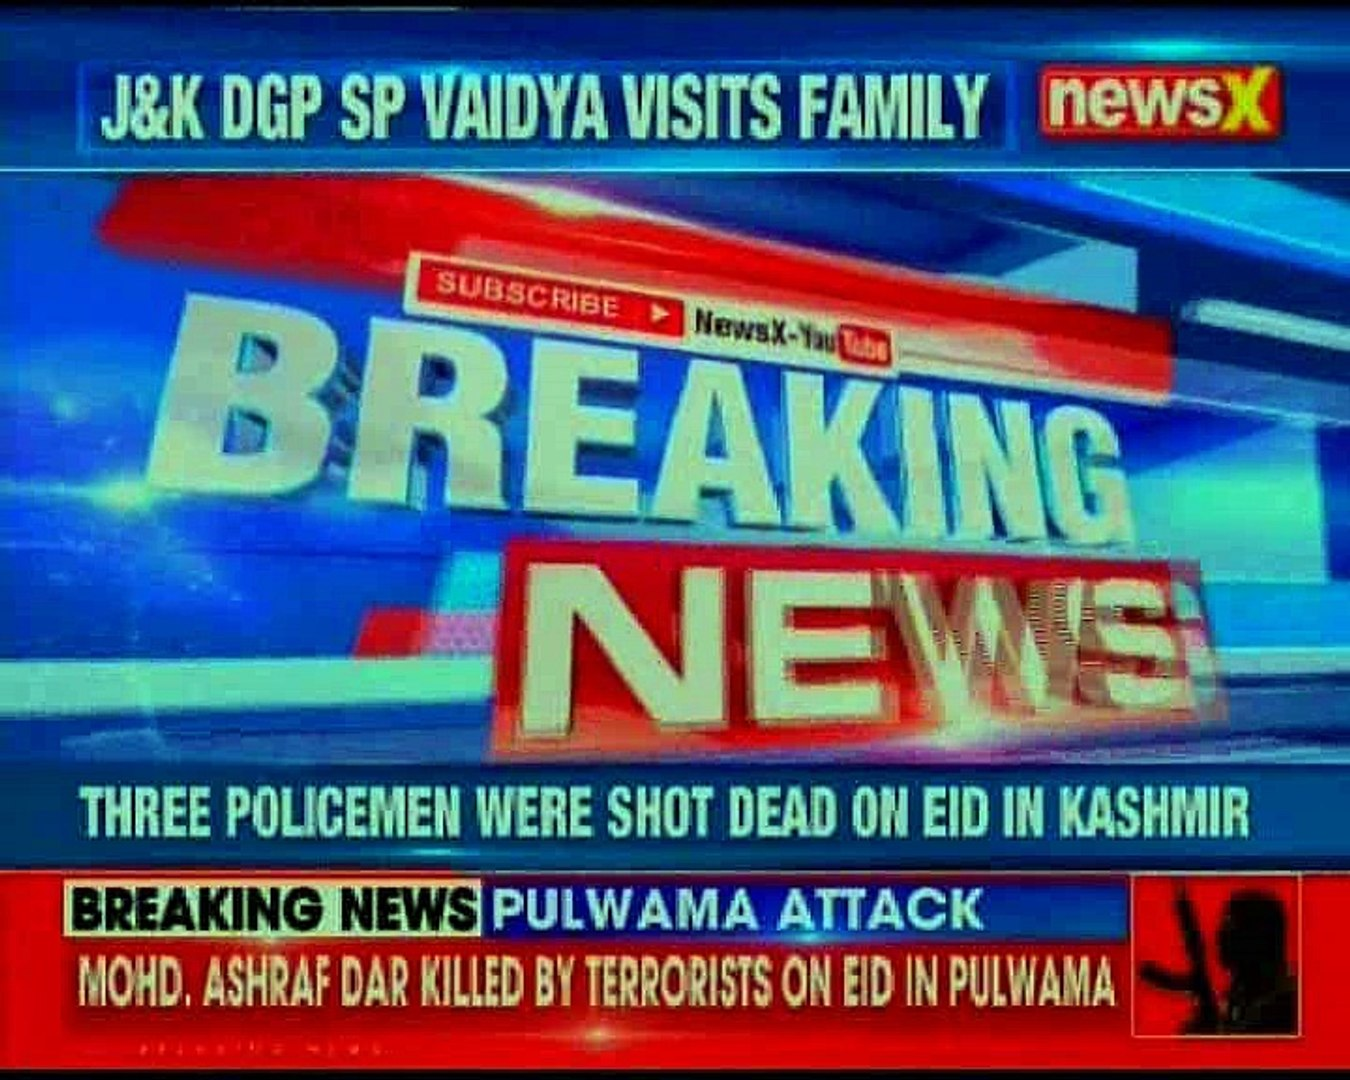 Jammu & Kashmir: Top police brass visits family of policeman who was killed on eid by militants